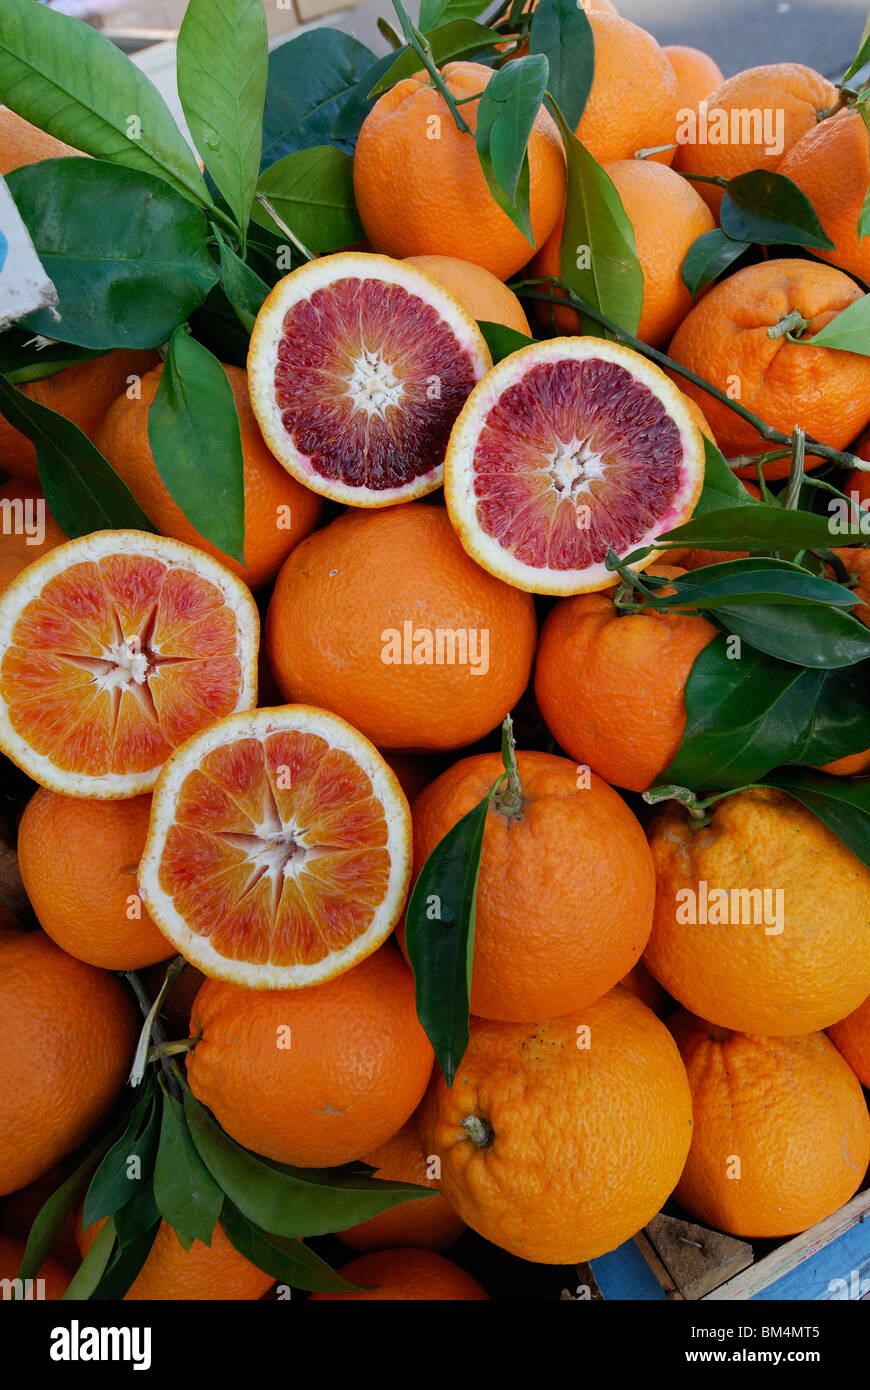 Syracuse / Siracusa. Sicily. Italy. Ortygia. Sicilian Tarocco Oranges on sale at the market. - Stock Image